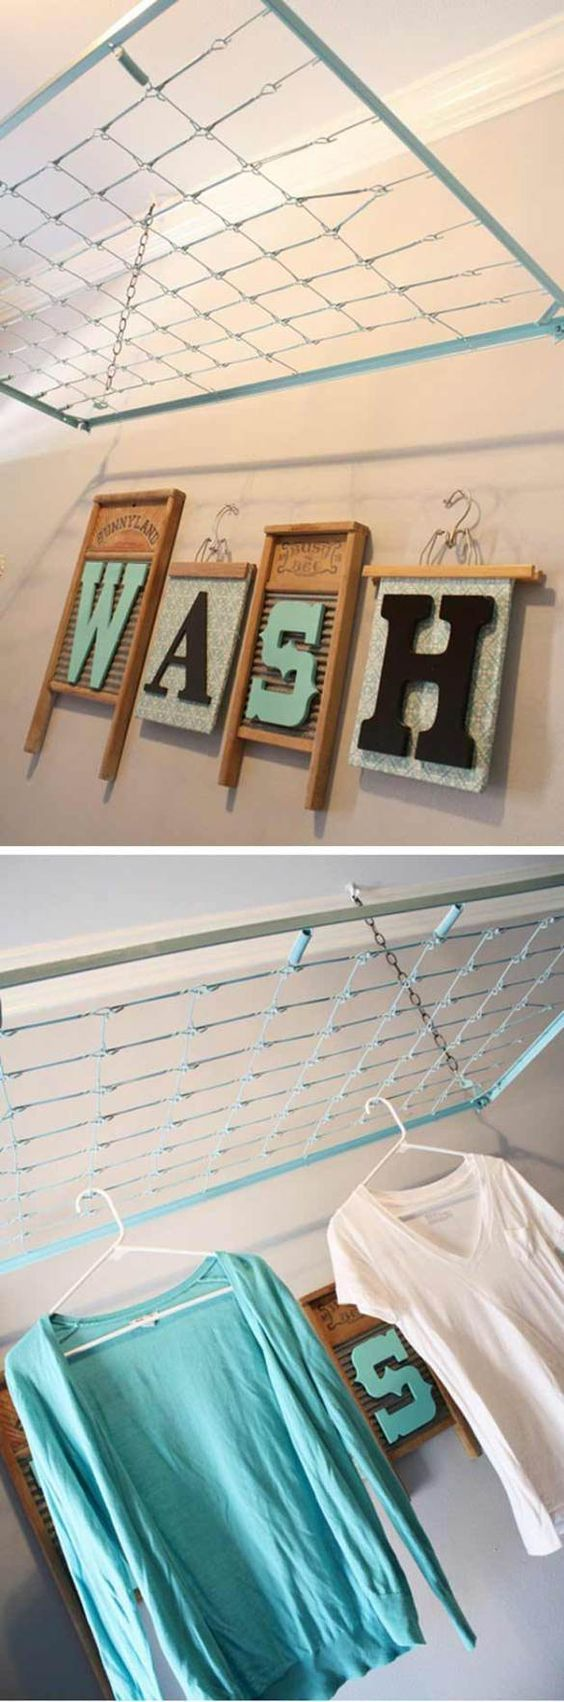 9 Laundry Room Hacks That Are Beyond Genius Laundry In